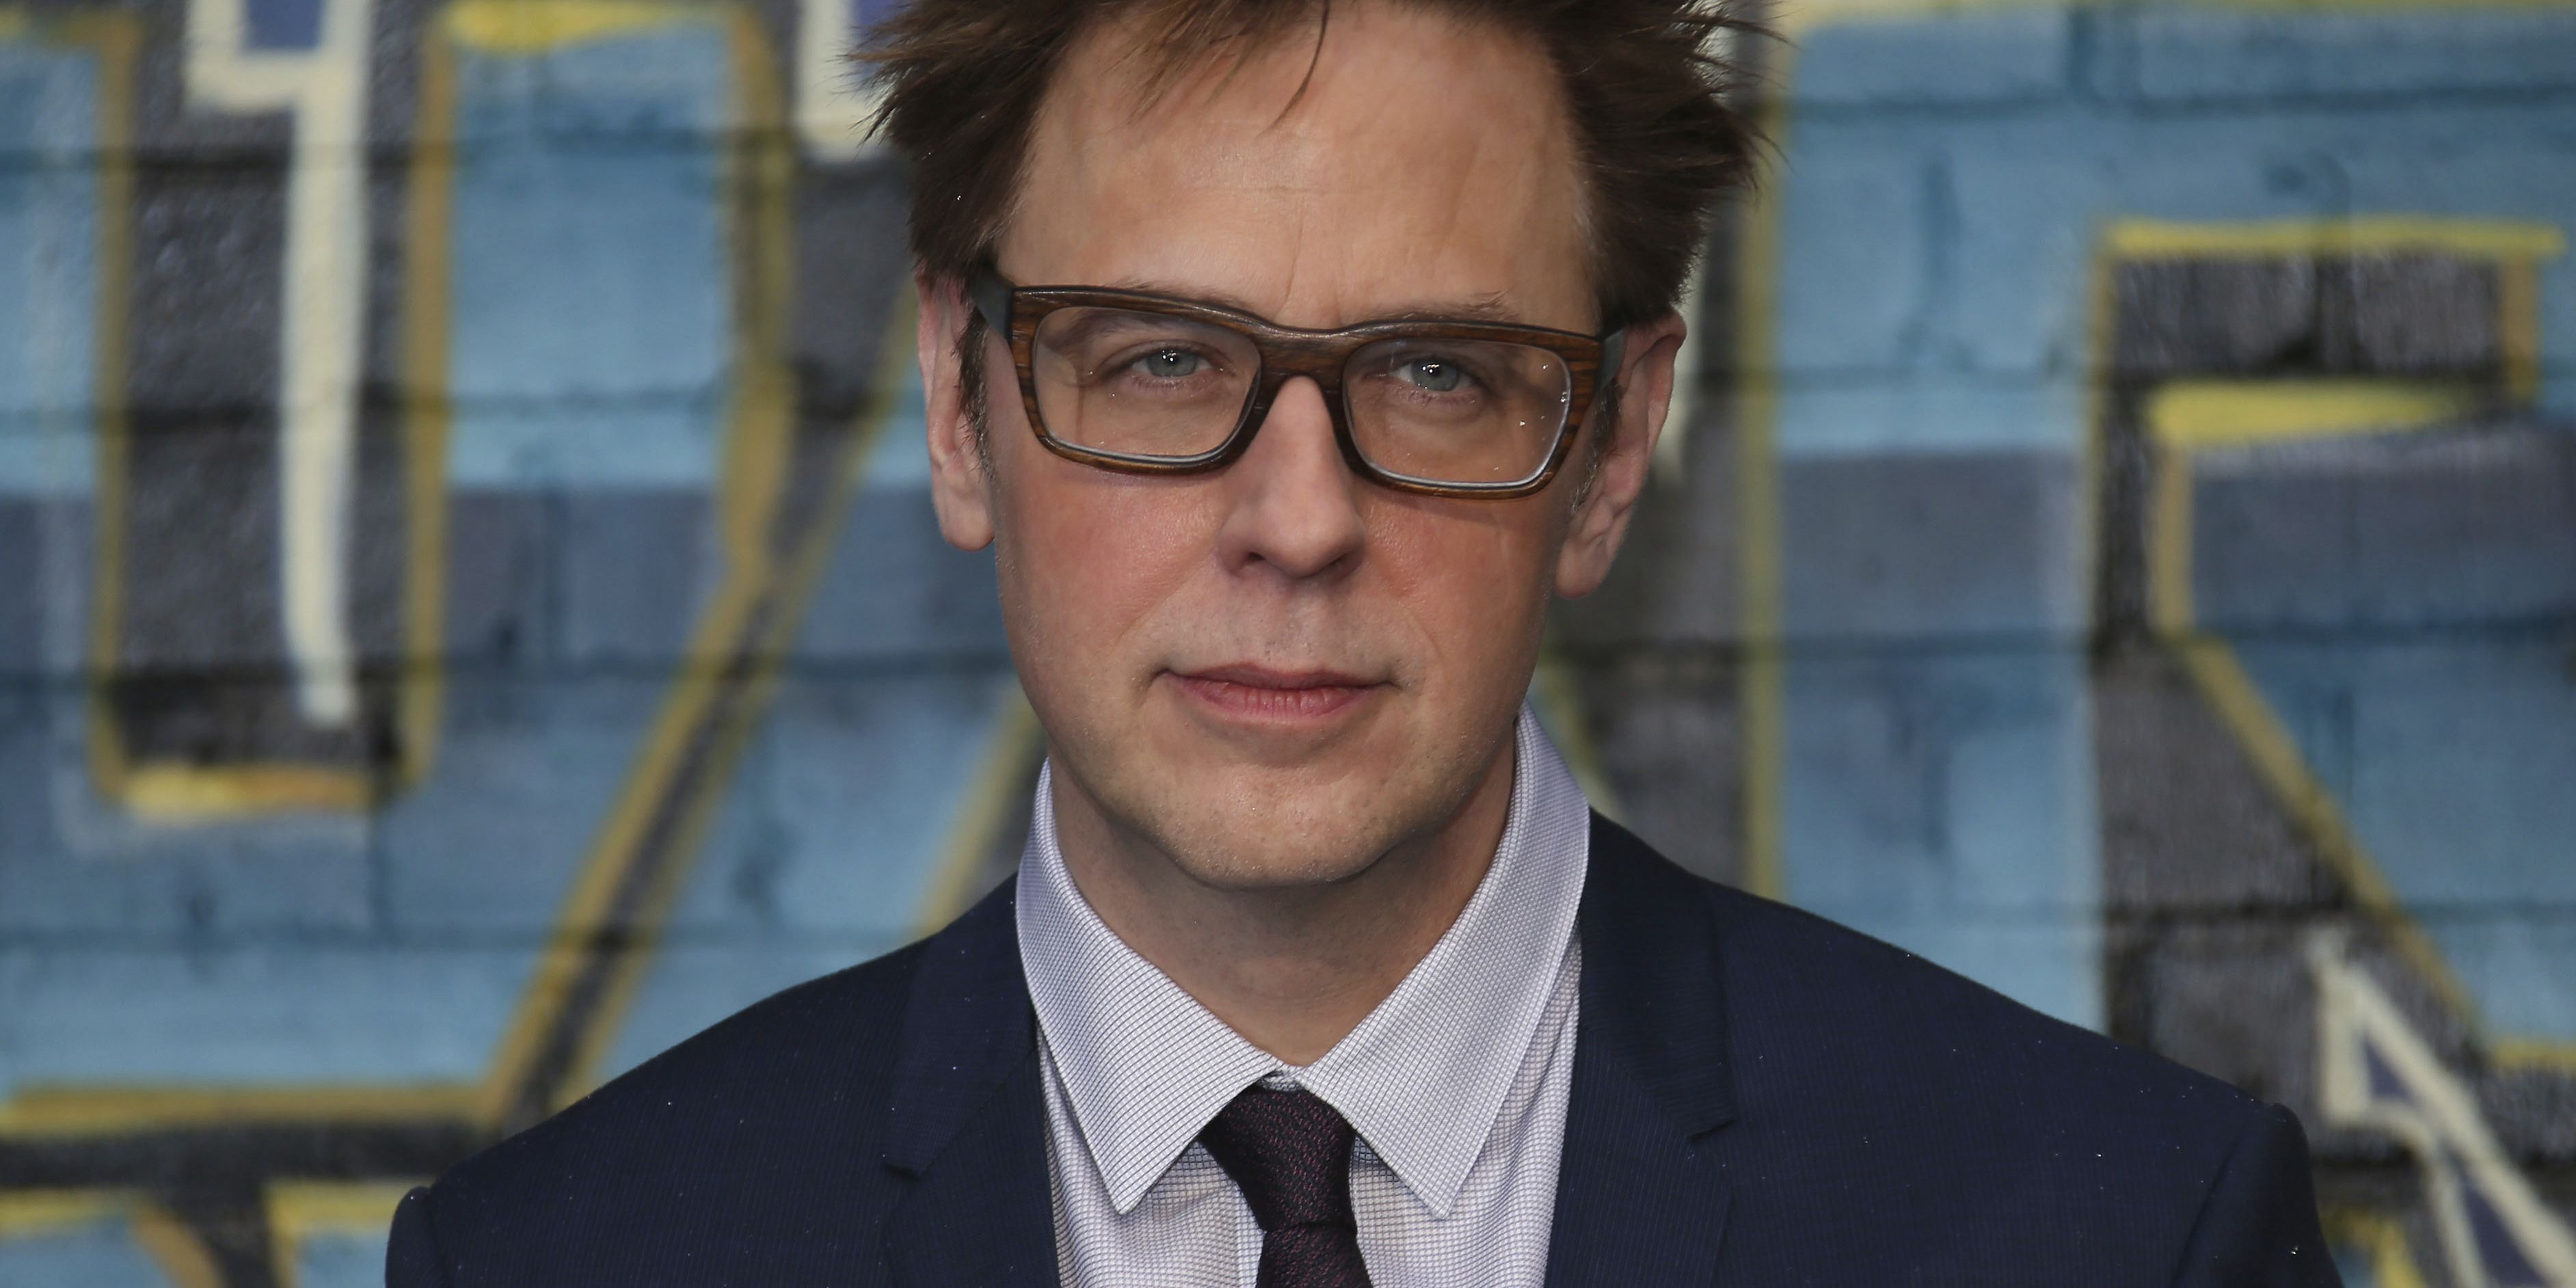 Disney reinstates James Gunn as 'Guardians of the Galaxy Vol. 3' director